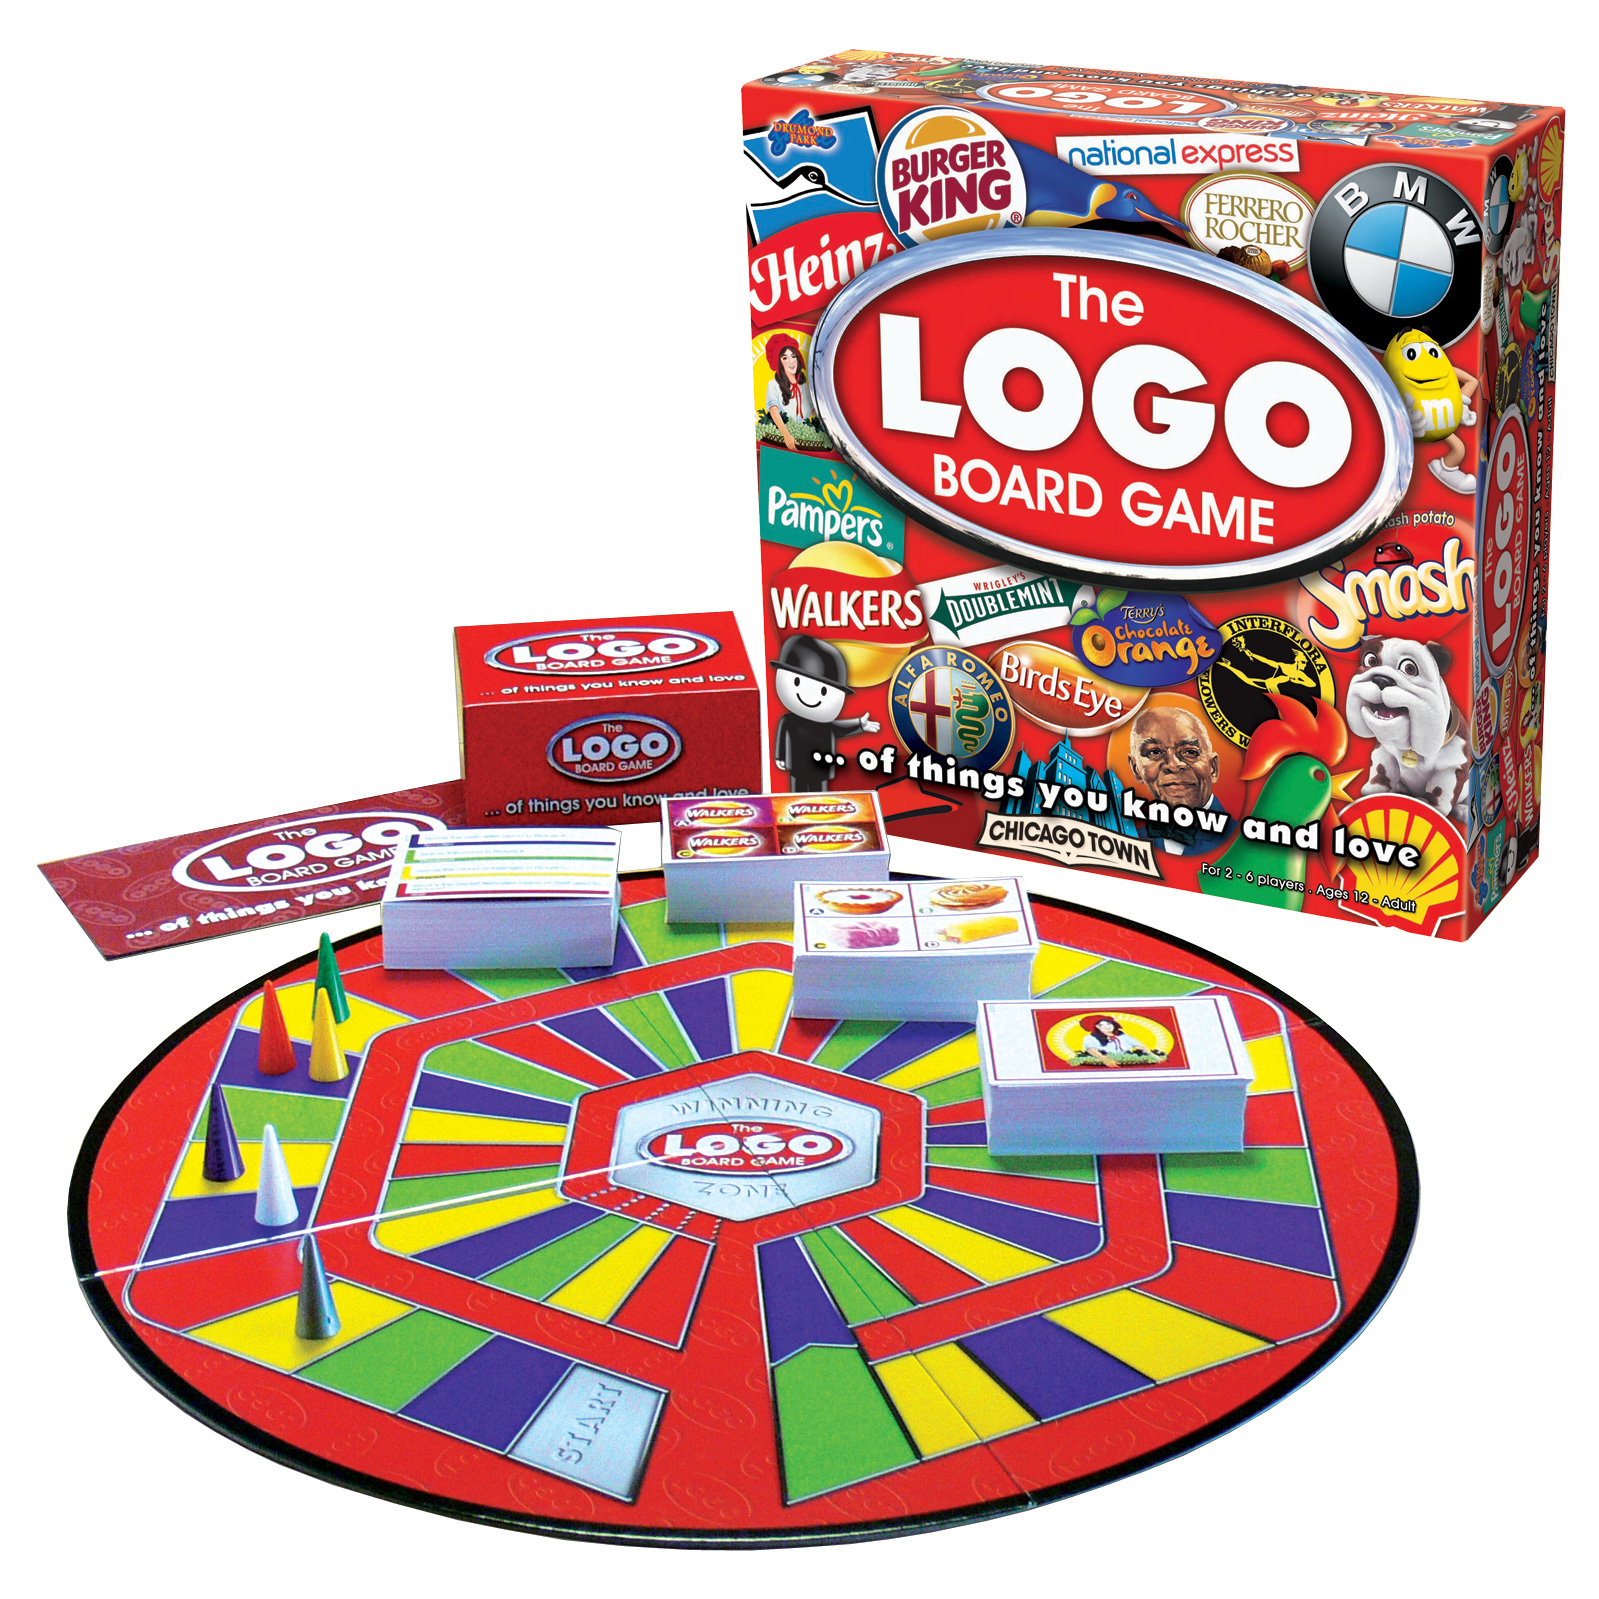 LOGO family board game